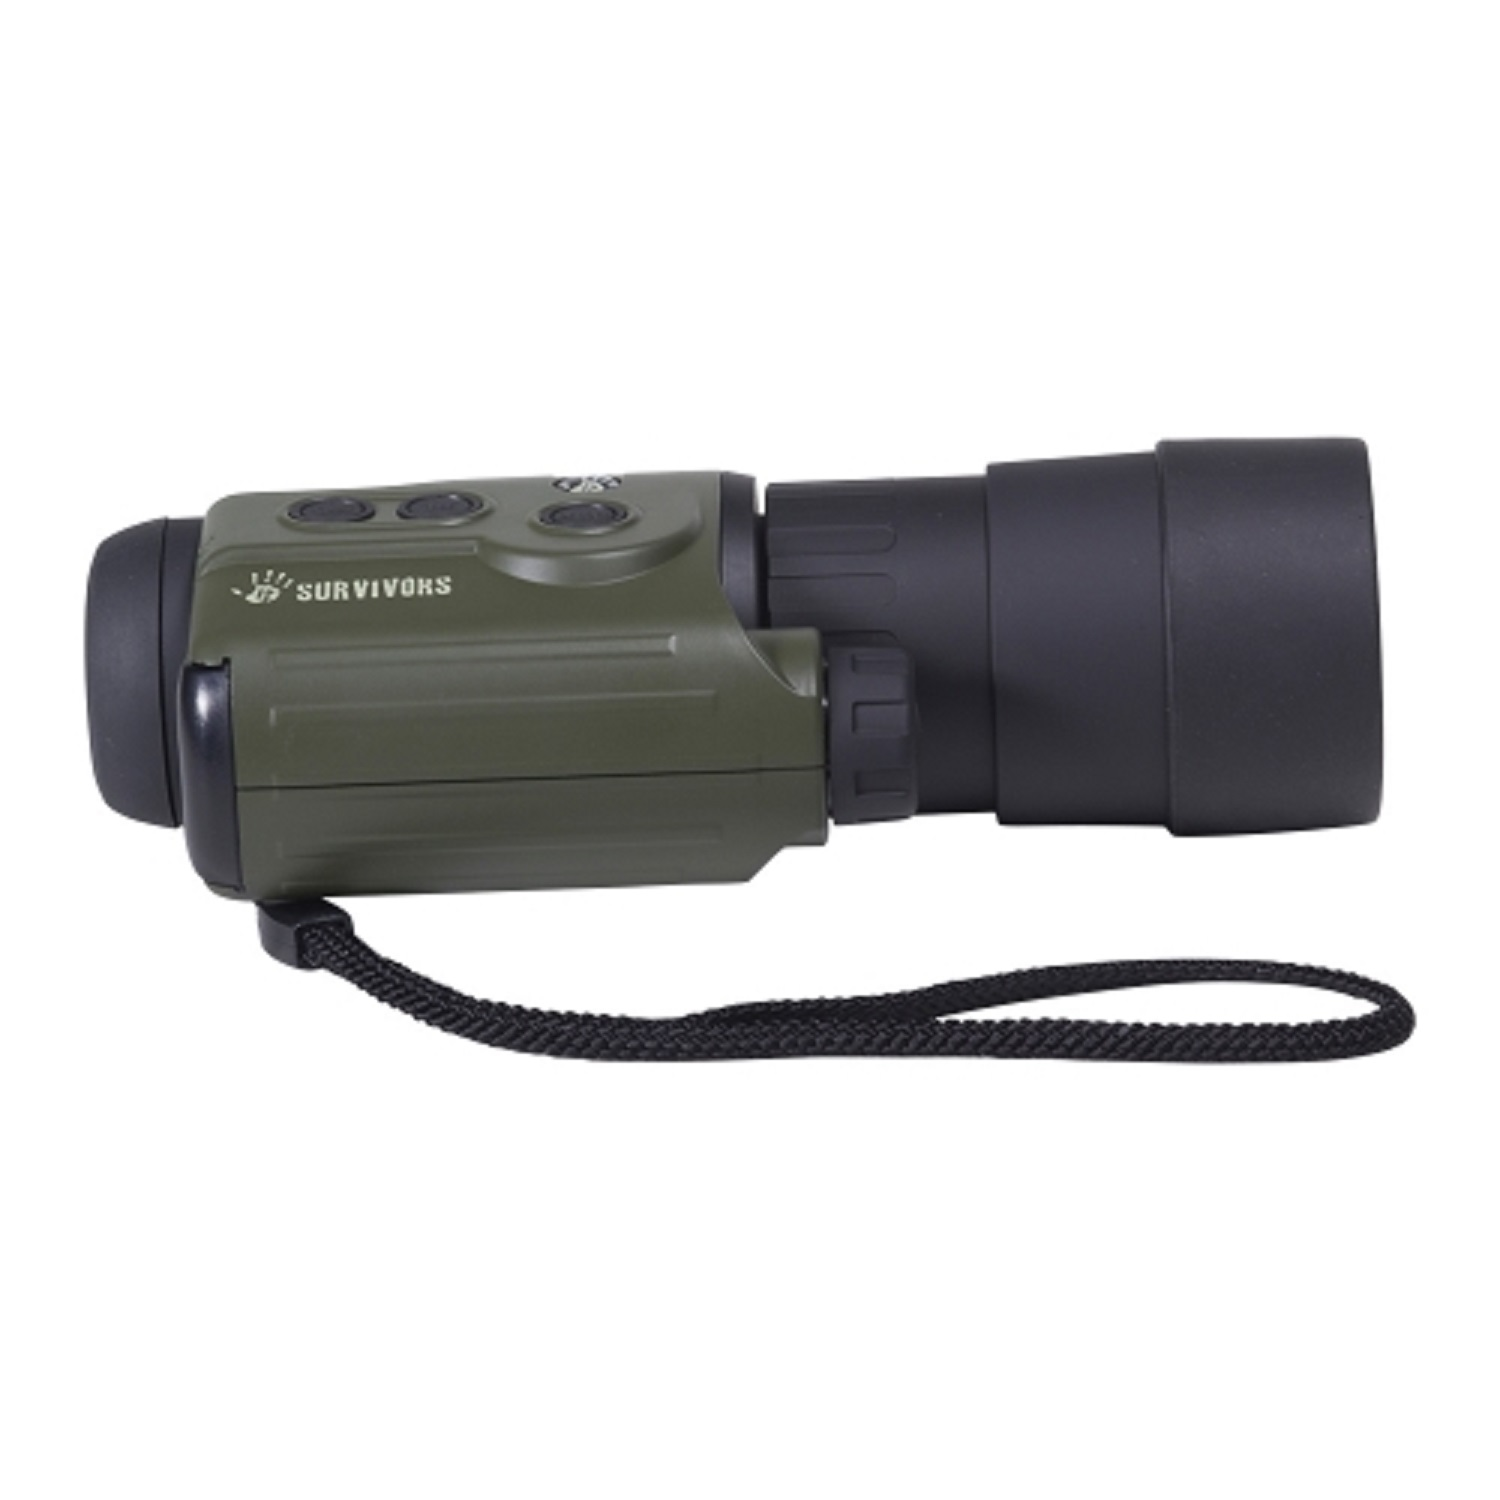 12 Survivors Trace 5x50 Digital NV Recording Monocular by 12 Survivors